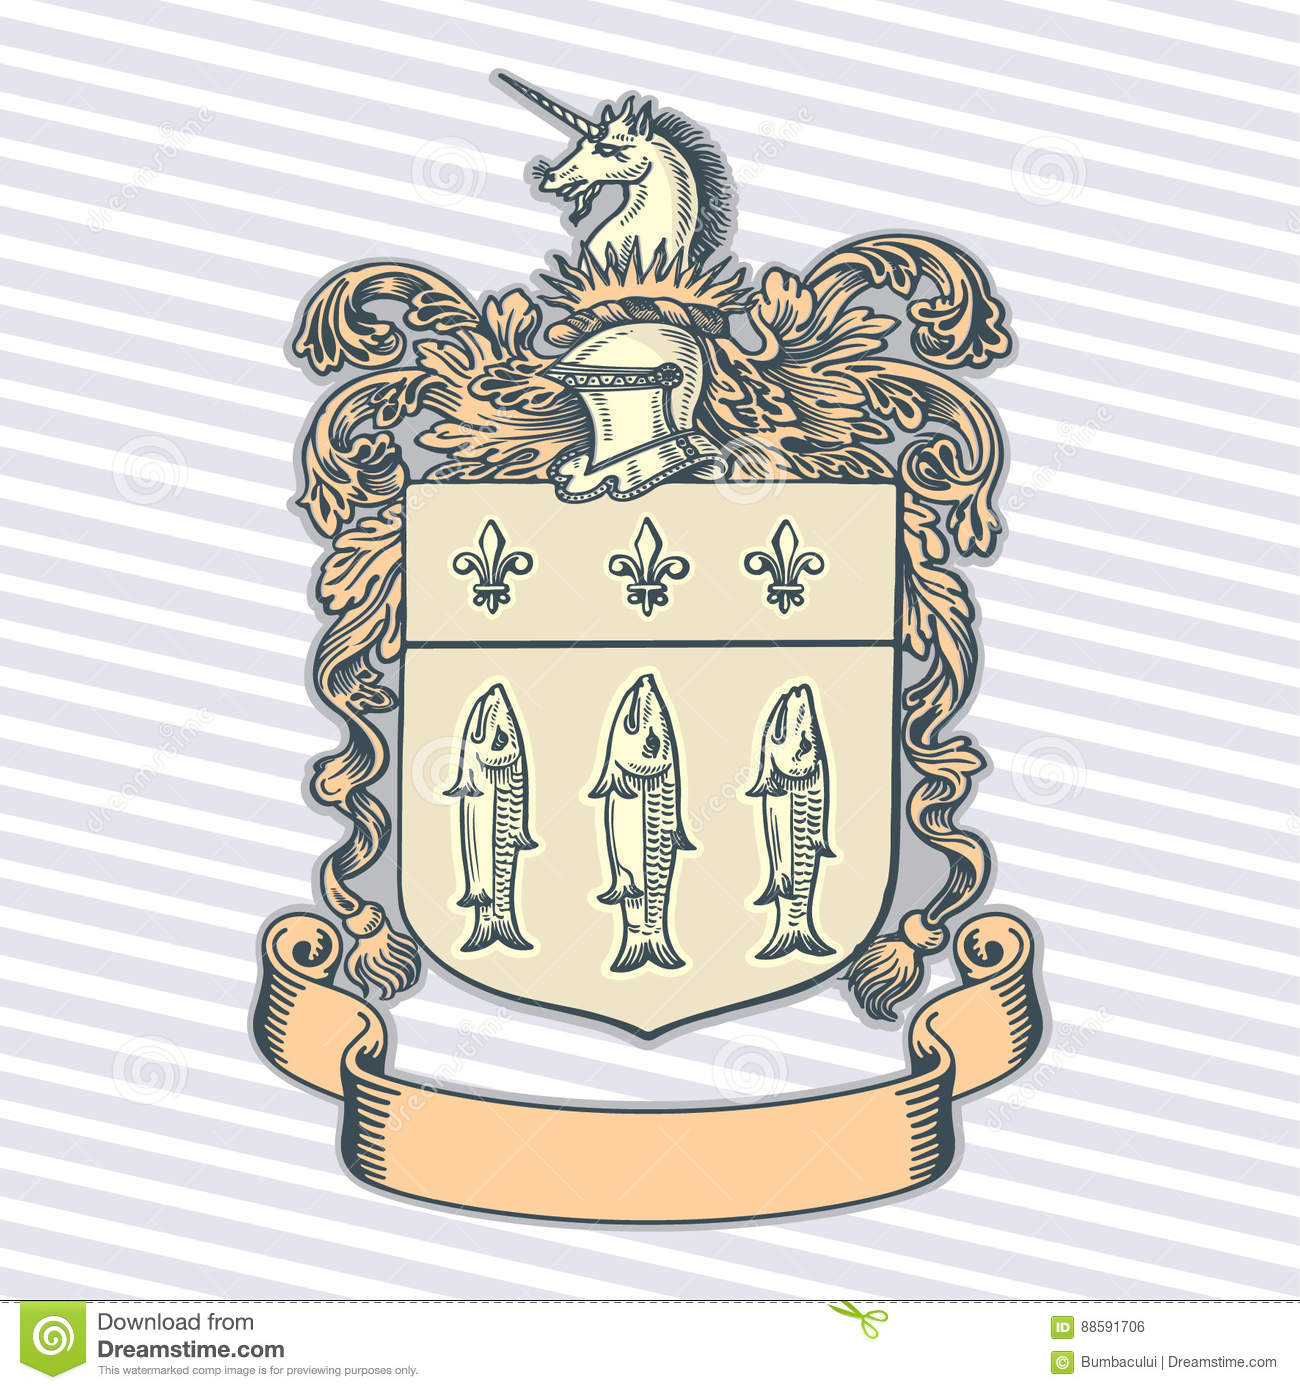 Category:Books about heraldry